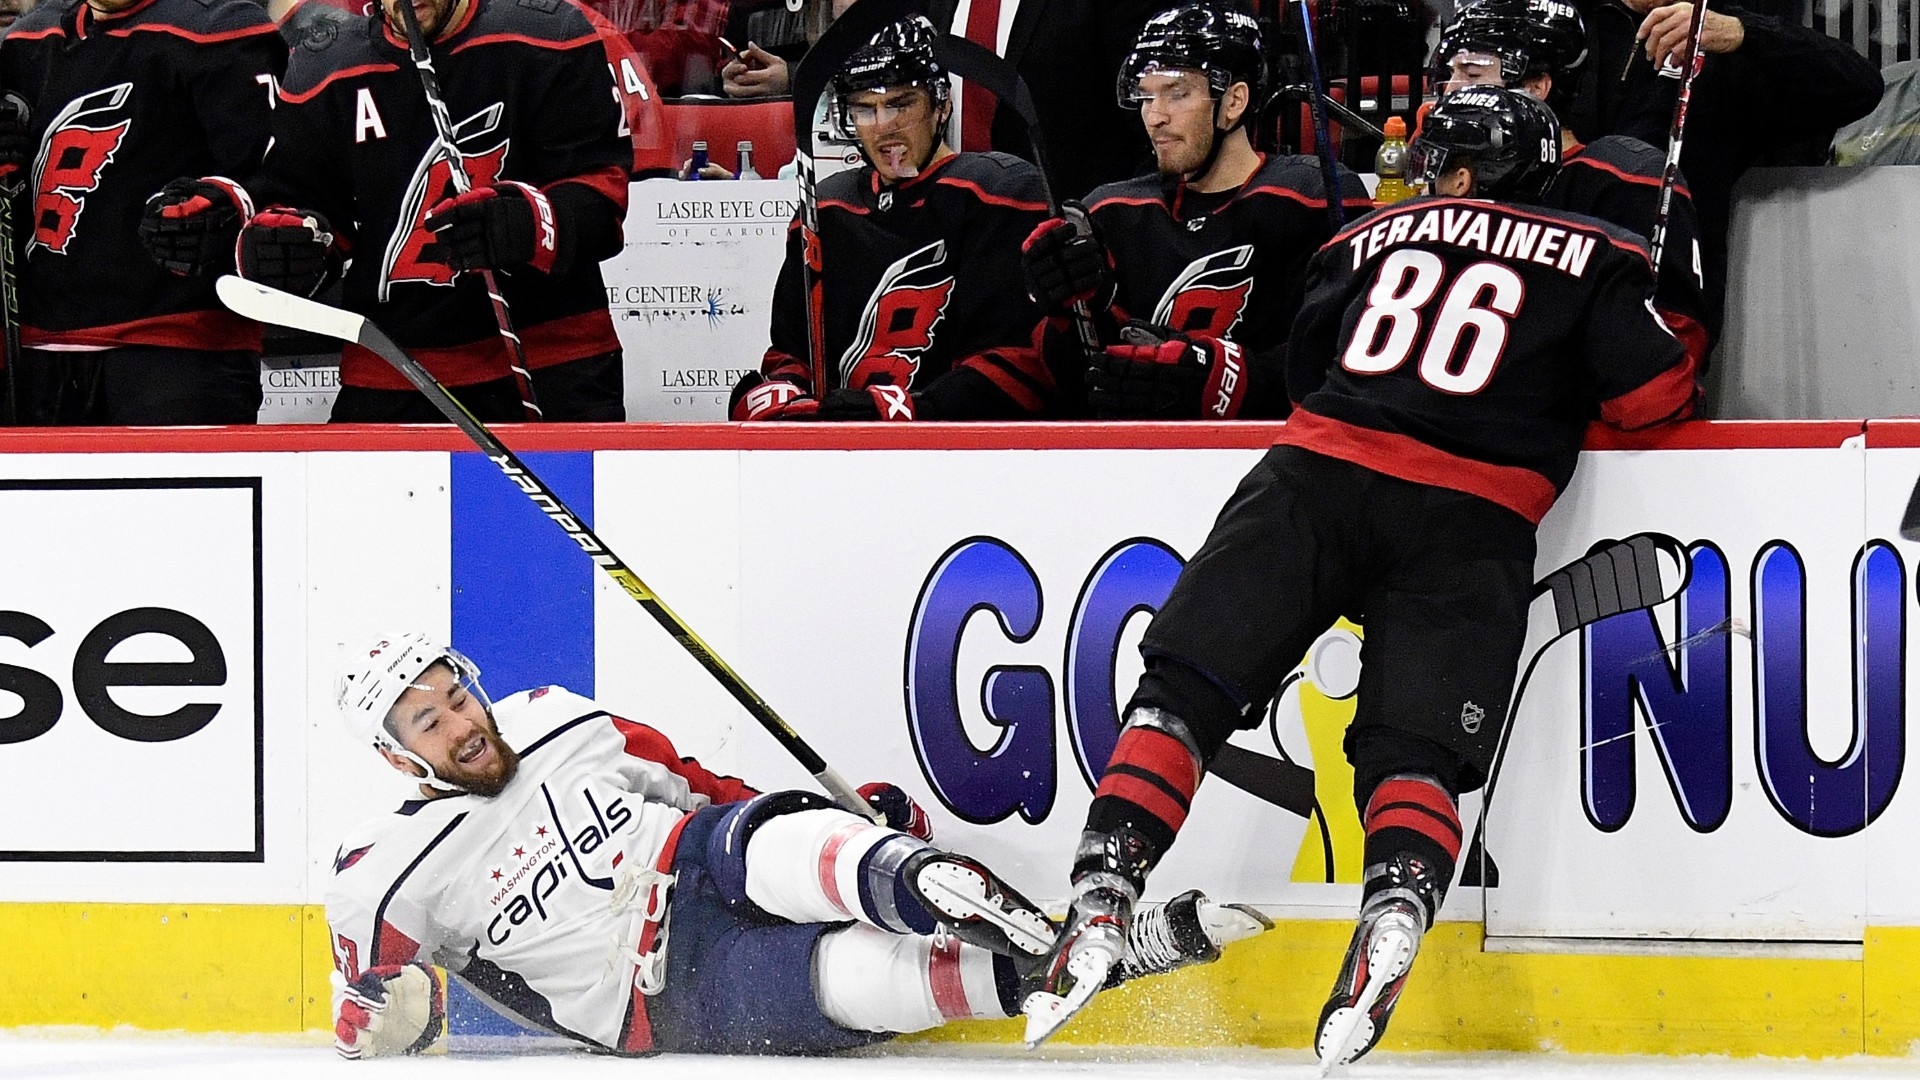 NHL Playoffs 2019: Hurricanes set defensive record in Game 3 win over Capitals